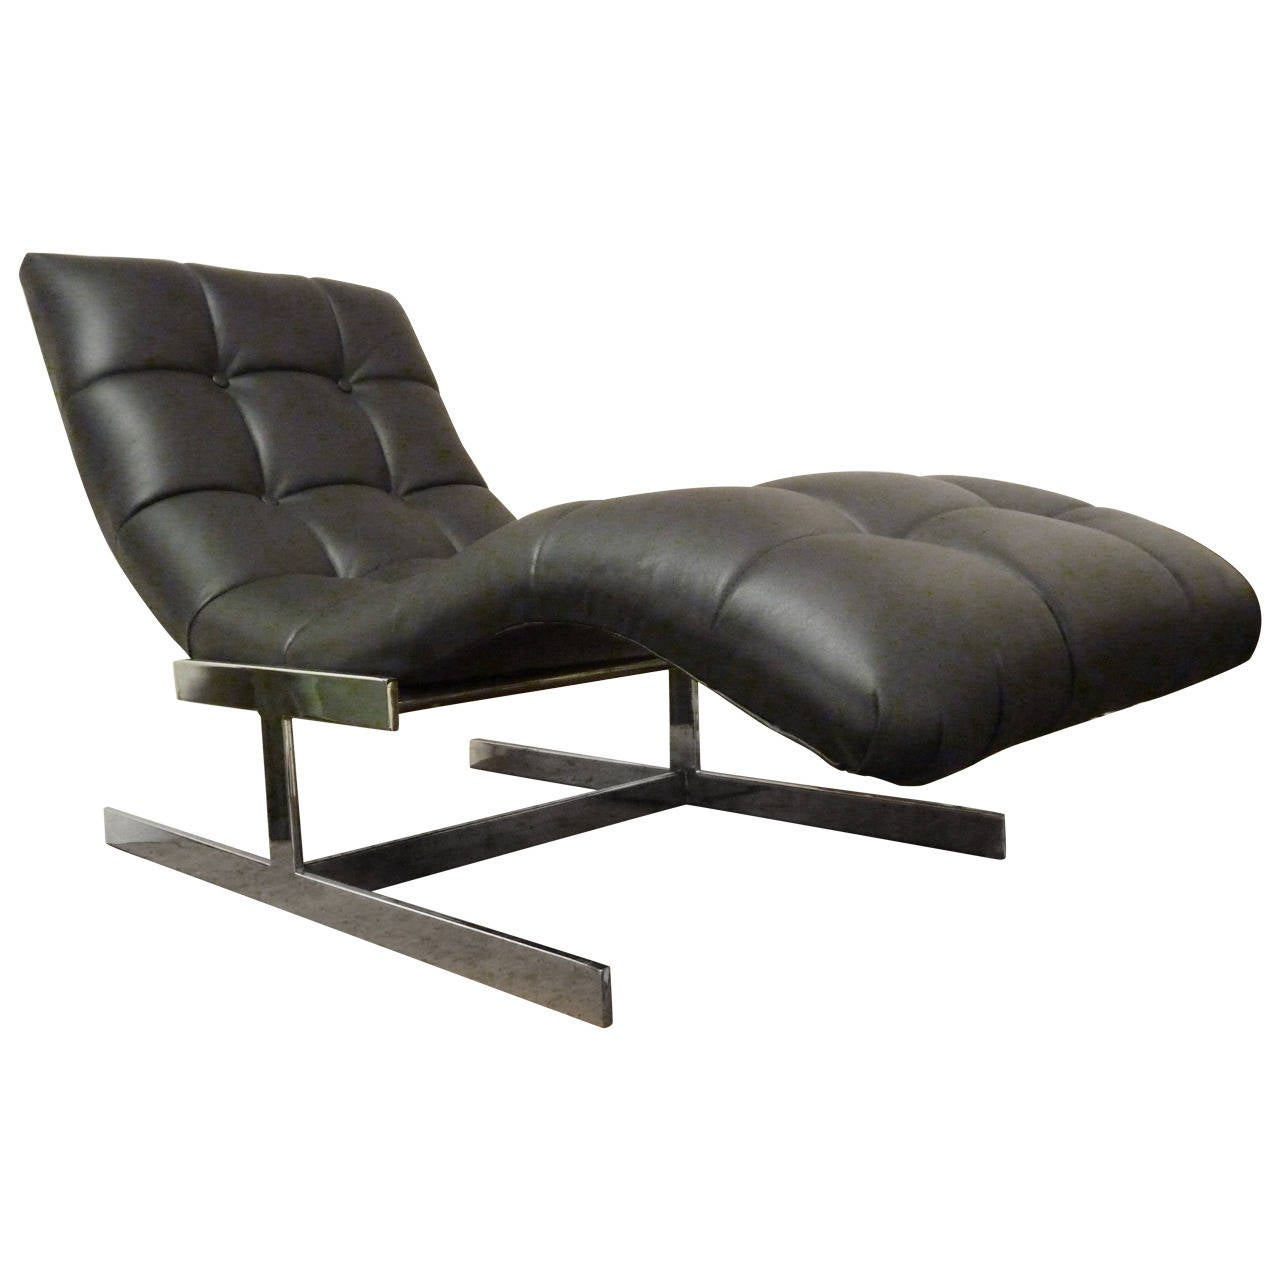 Milo baughman chaise longue at 1stdibs for Chaise longue sale